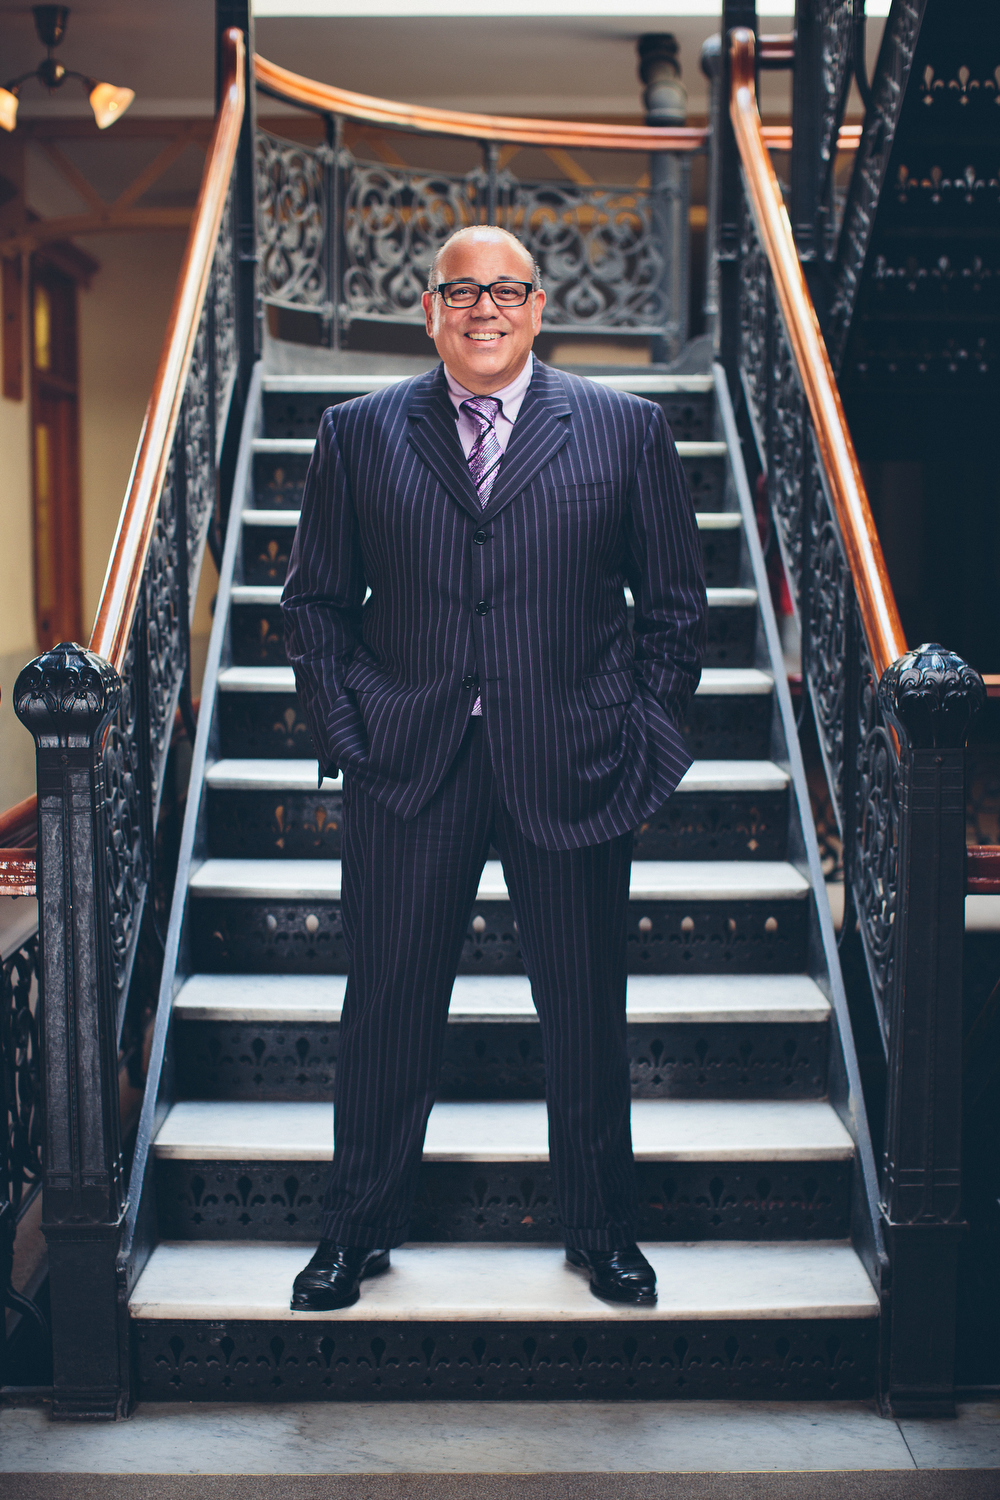 Attorney Portrait on Monadnock Building Stairs